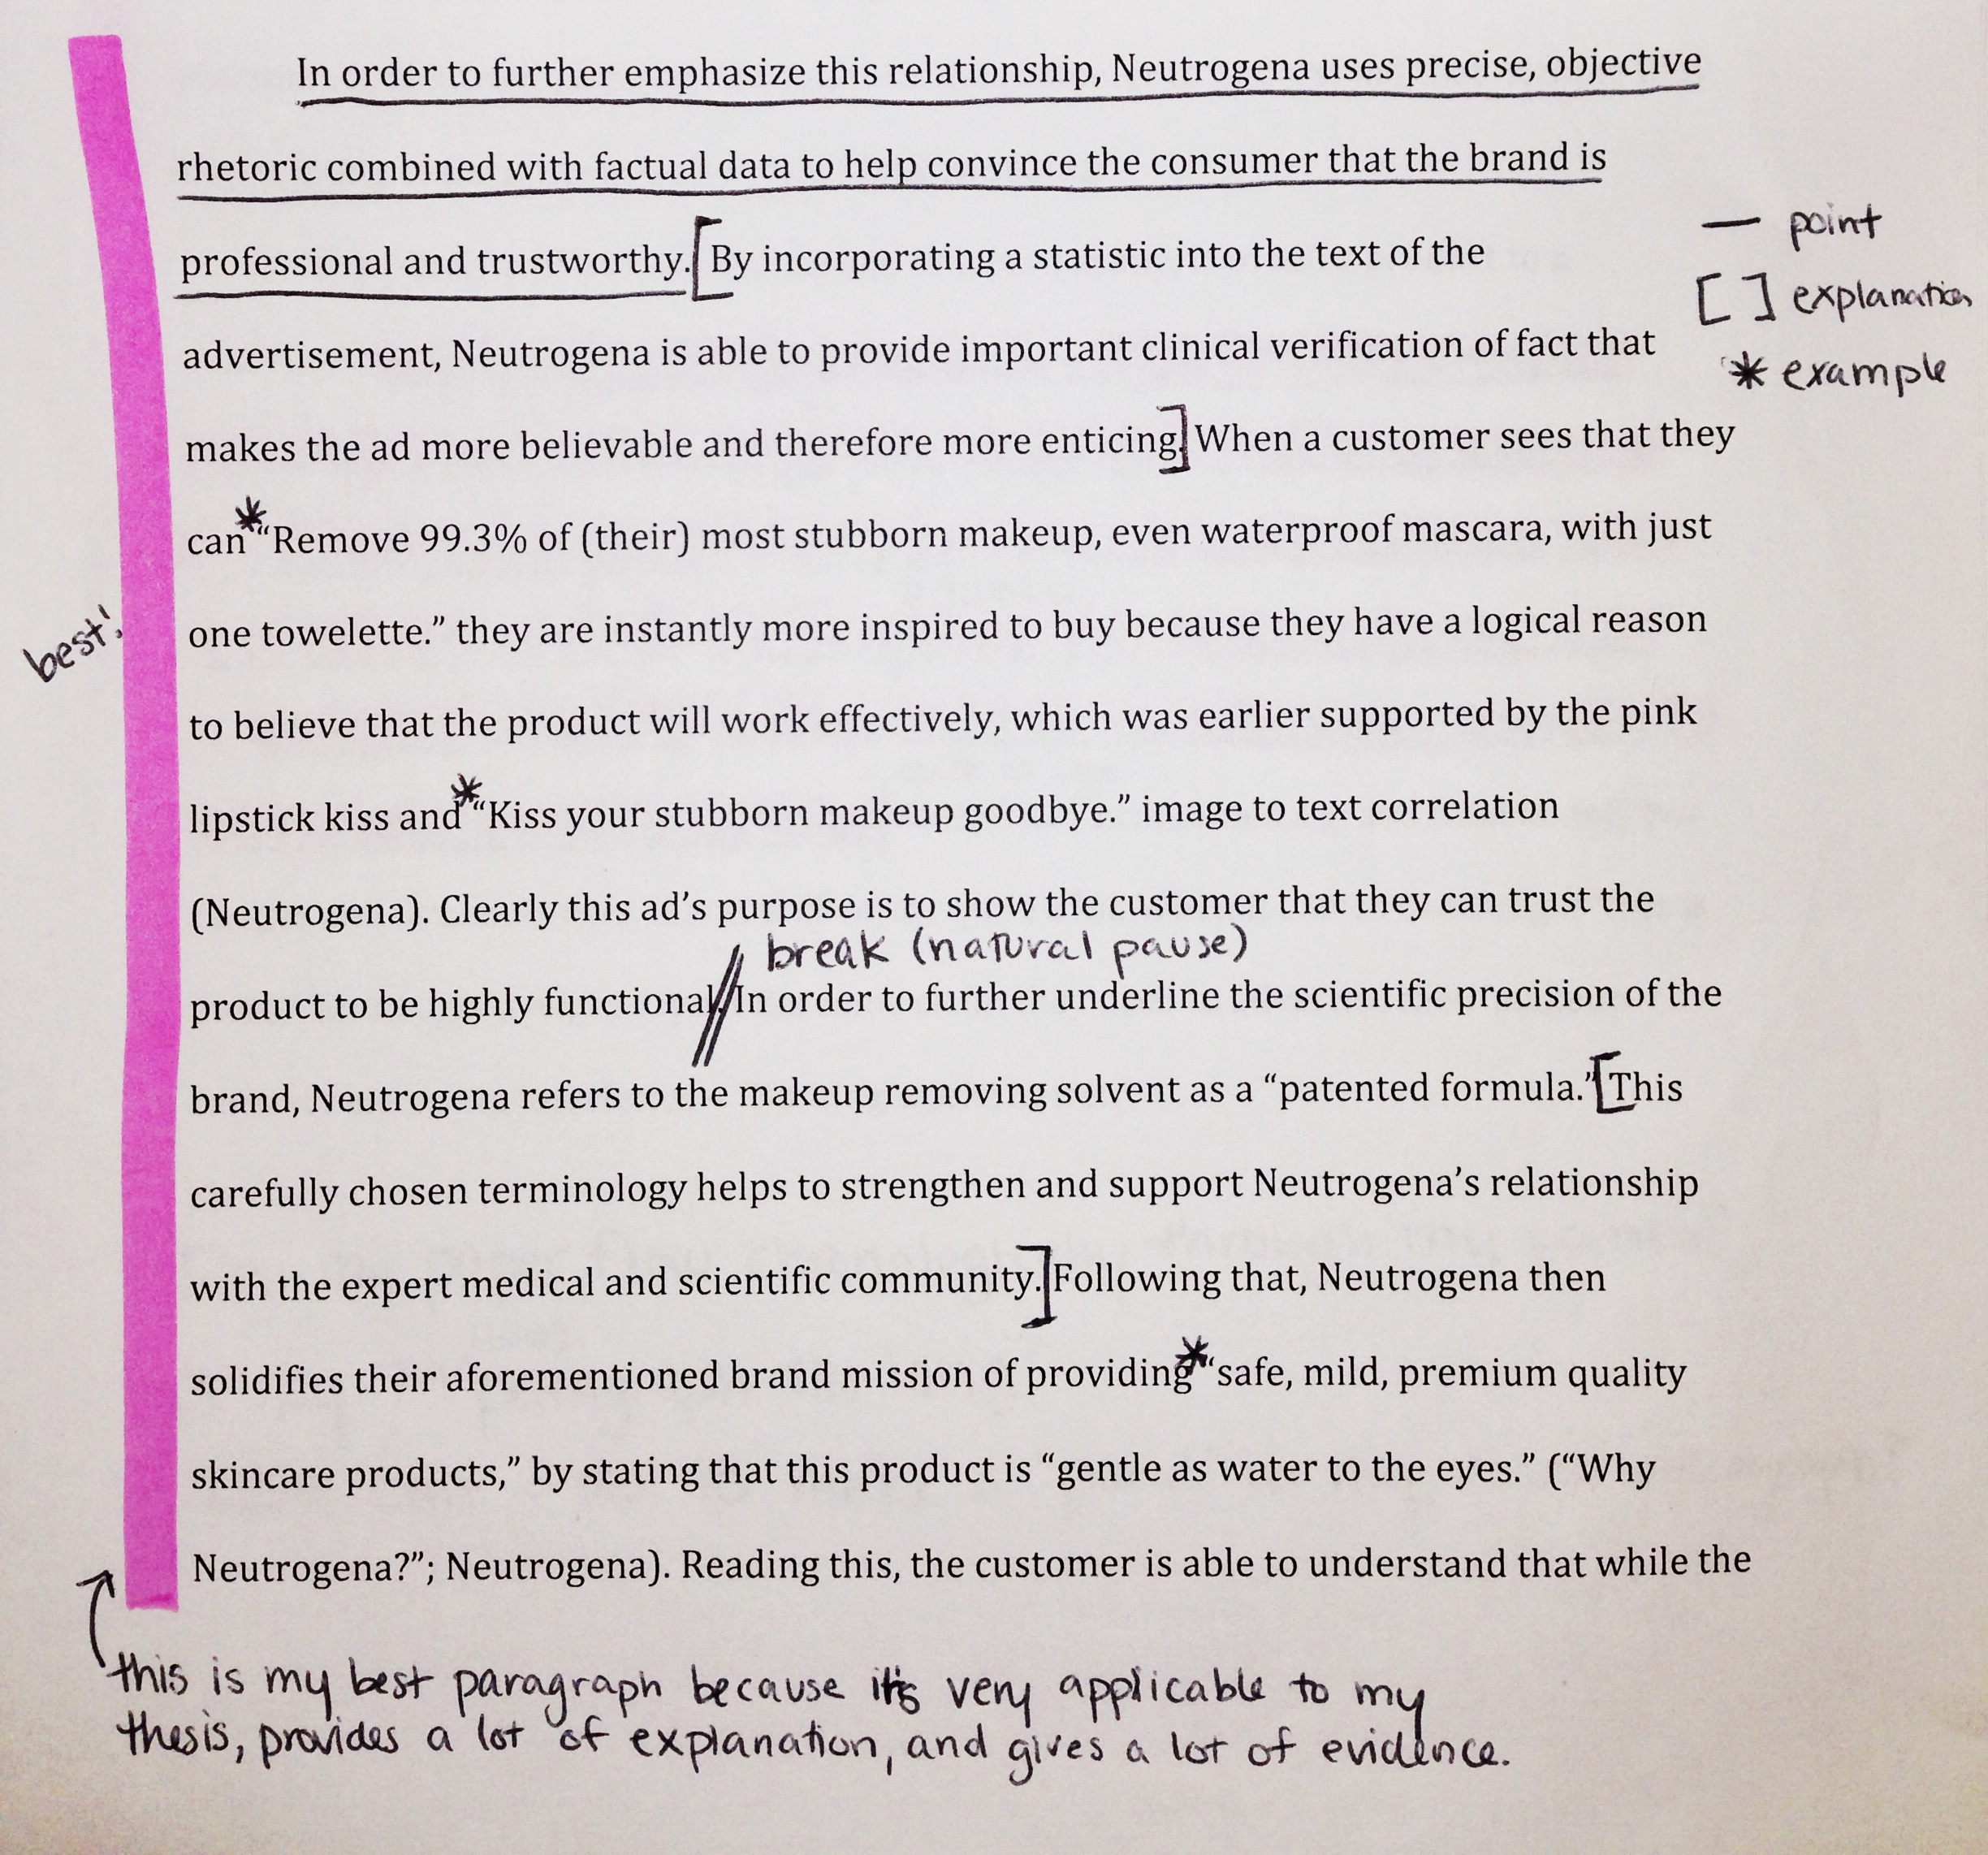 020 Conclusion Example For Research Paper Distinguished Esl Rhetorical Analysis Essay Writing Site Phd Of Amazing Help Full